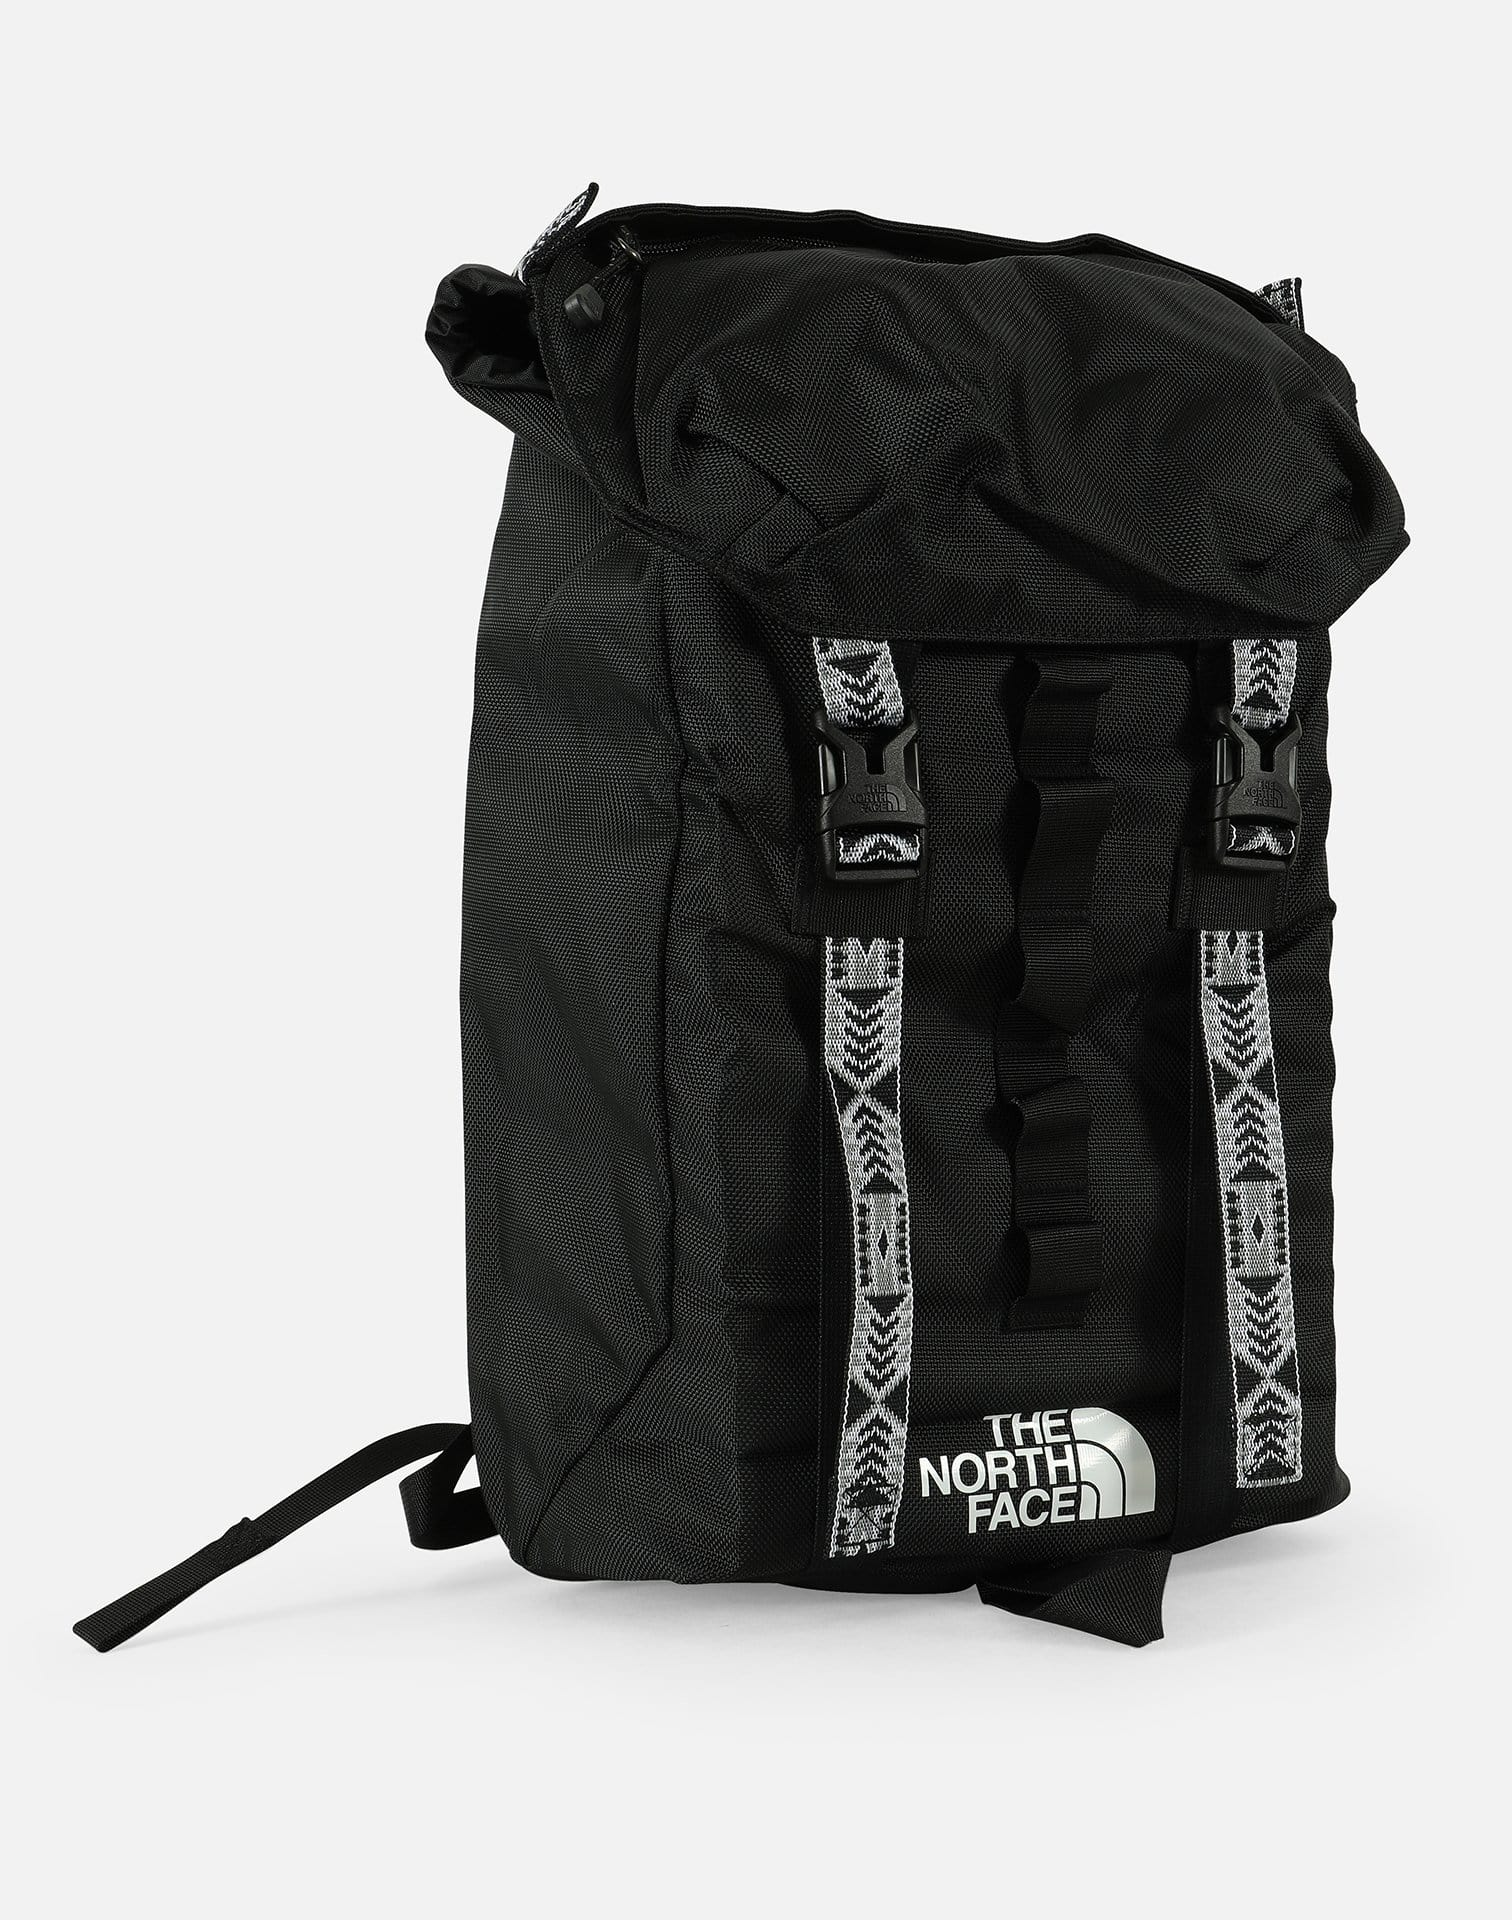 The North Face Linage Ruck 23L Backpack